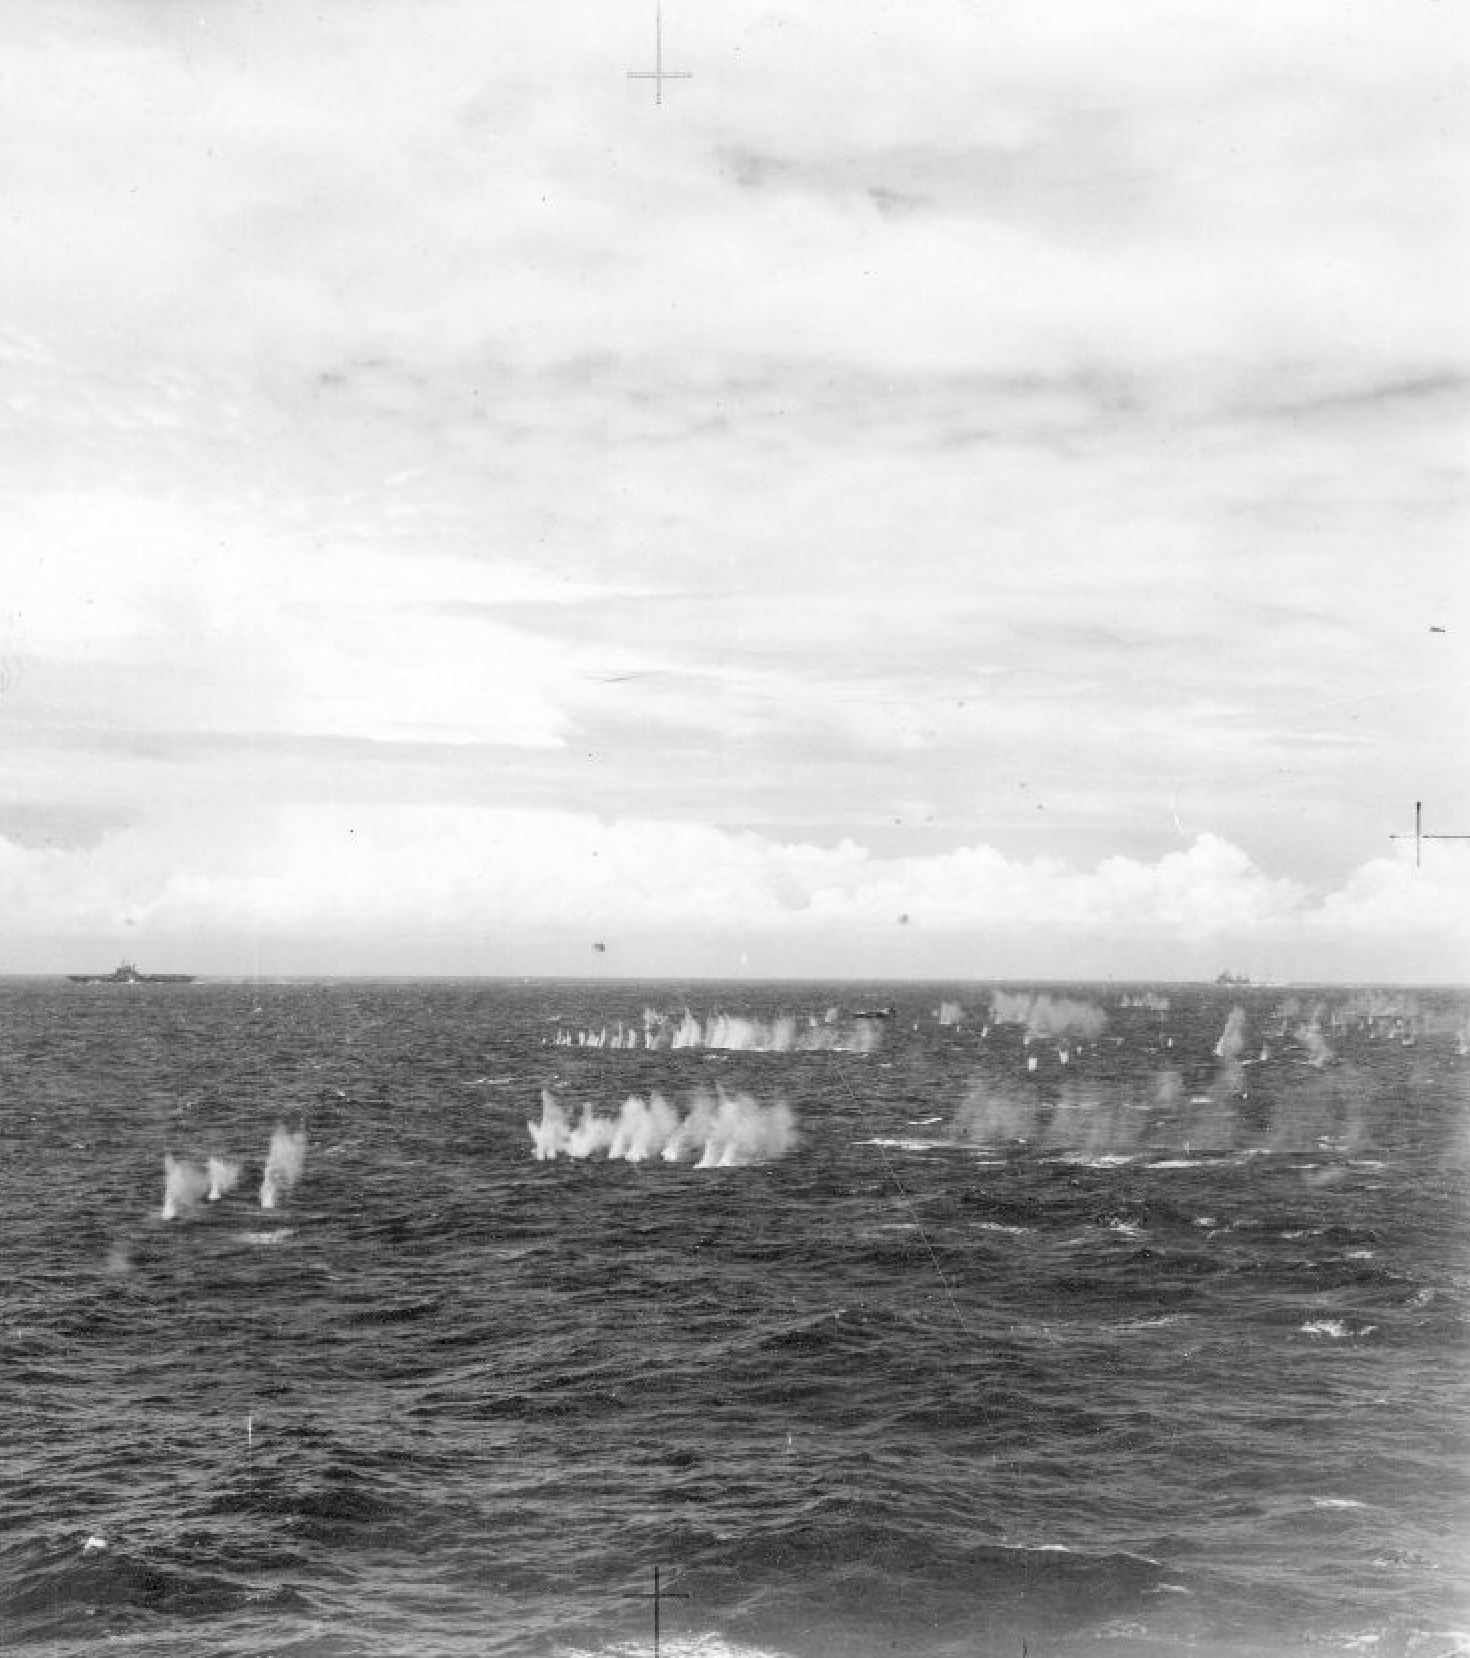 A Ki-21 'Sally' bomber is surrounded by spray kicked up by the close-range anti-aircraft armaments of British Pacific Fleet carriers and escorts. A Seafire can be seen climbing out of the close-defence zone on the right-edge of the picture. This Sally, and up to six others, were shot down. This picture is taken from HMS INDEFATIGABLE, with an unidentified armoured carrier and the battleship King George V in the background.